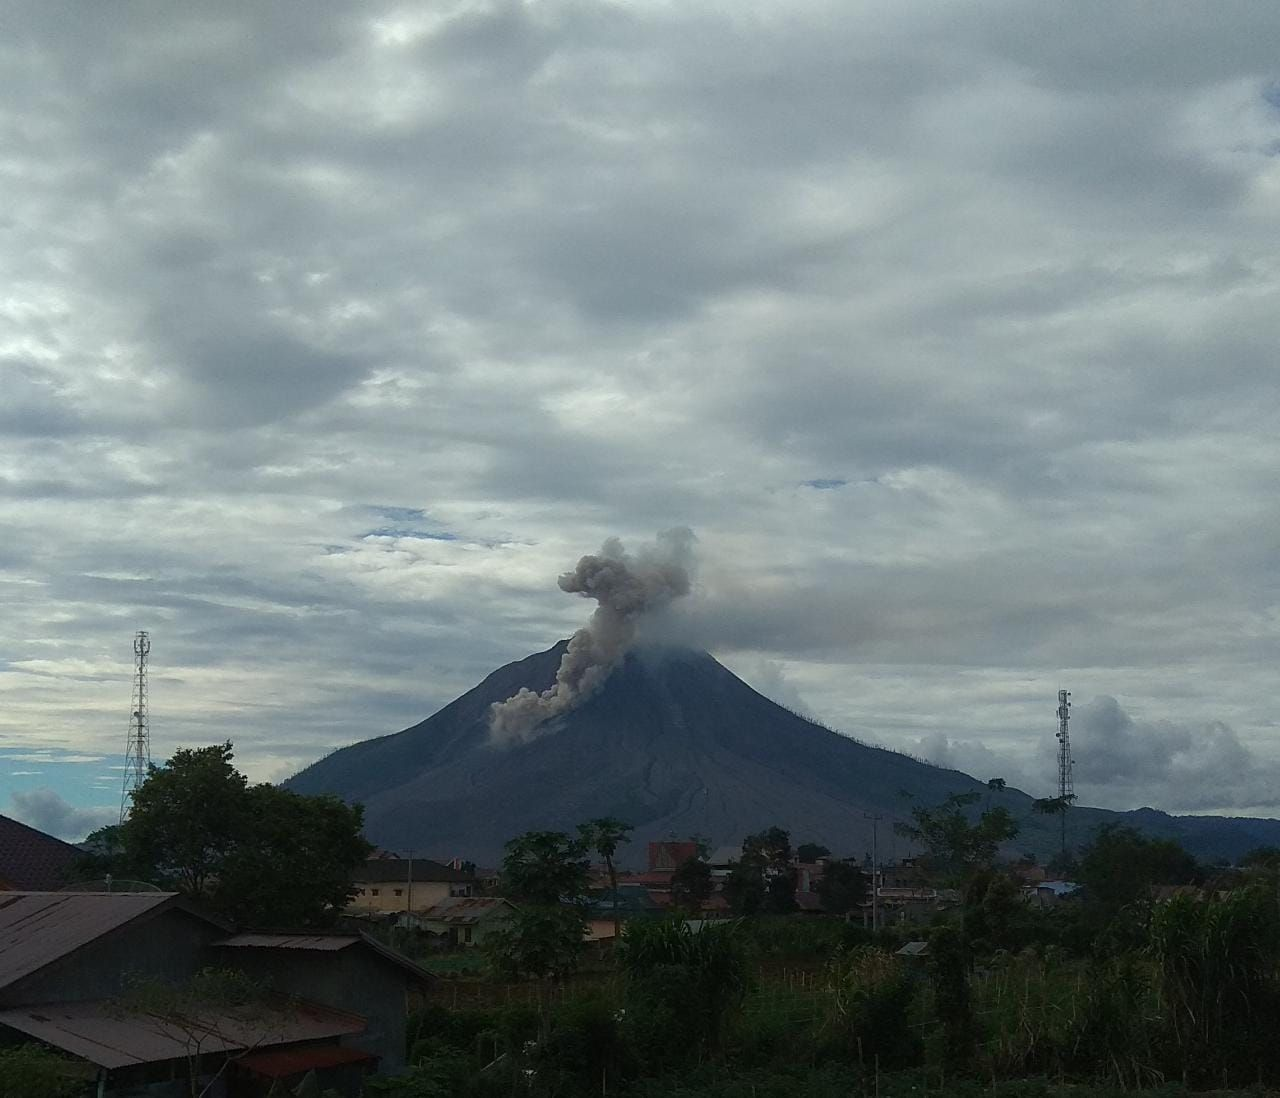 Sinabung -13.12.2020 3:45 p.m. WIB - Pyroclastic flow over 1000 meters - PVMBG webcam